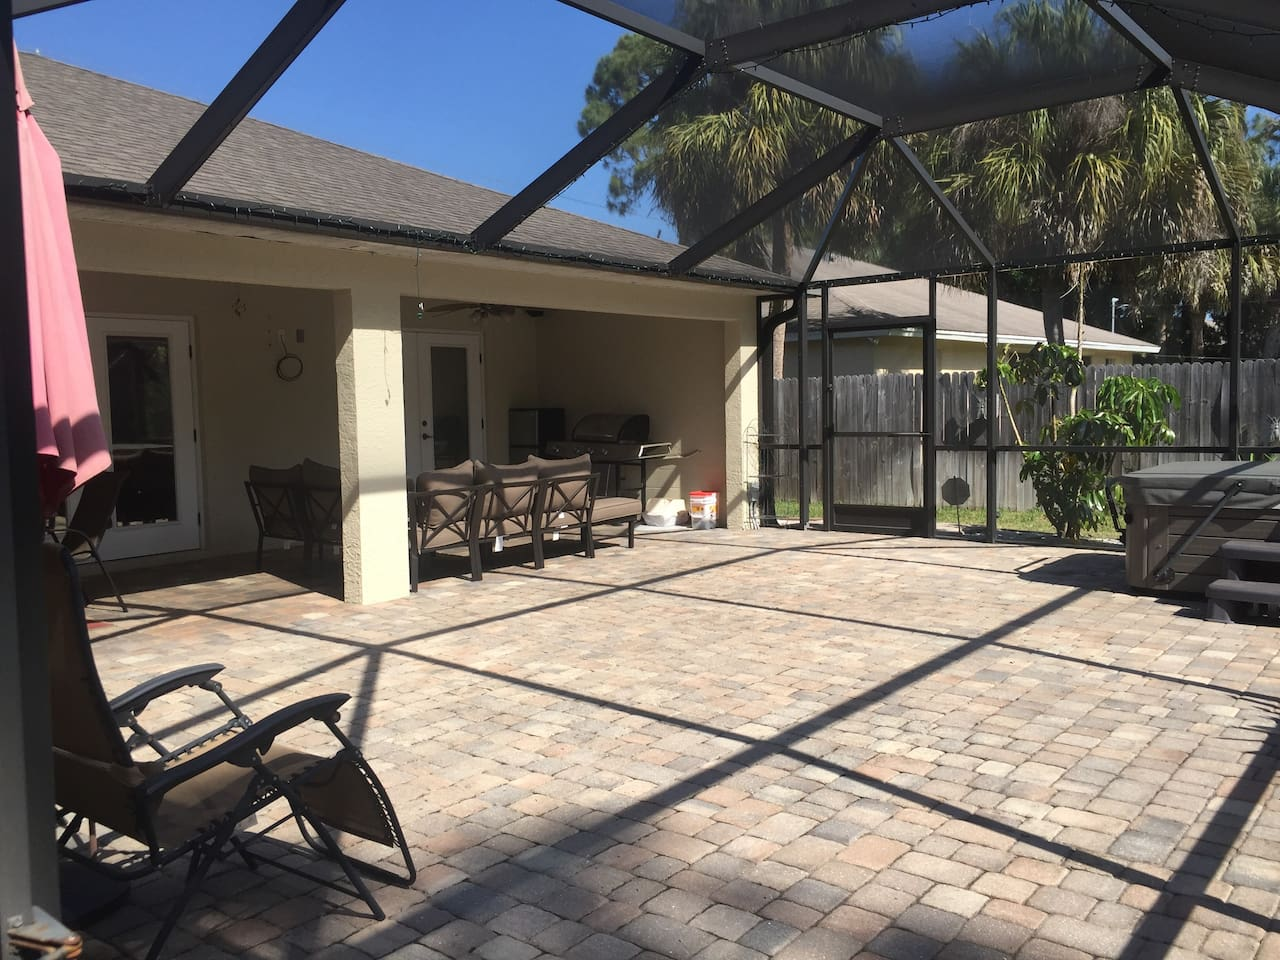 30' x 31' screened lanai with covered patio, plenty of relaxing space and therapeutic hot tub.